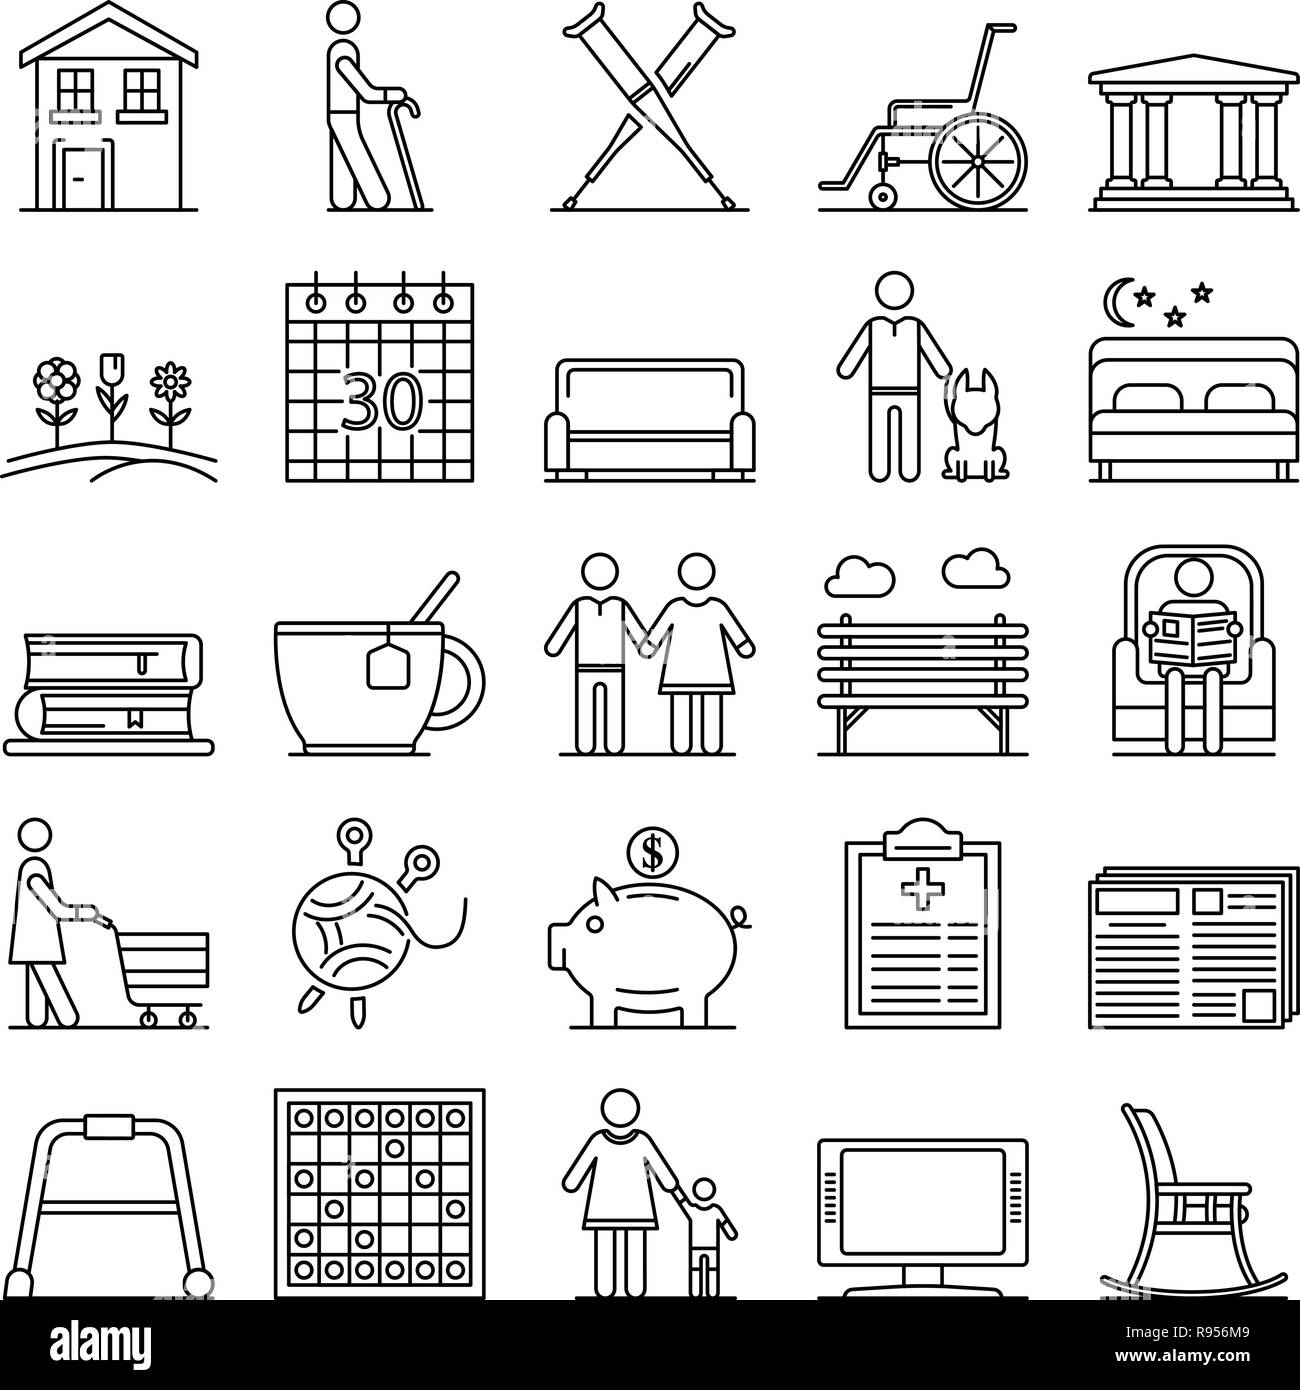 Pension icon set, outline style - Stock Image